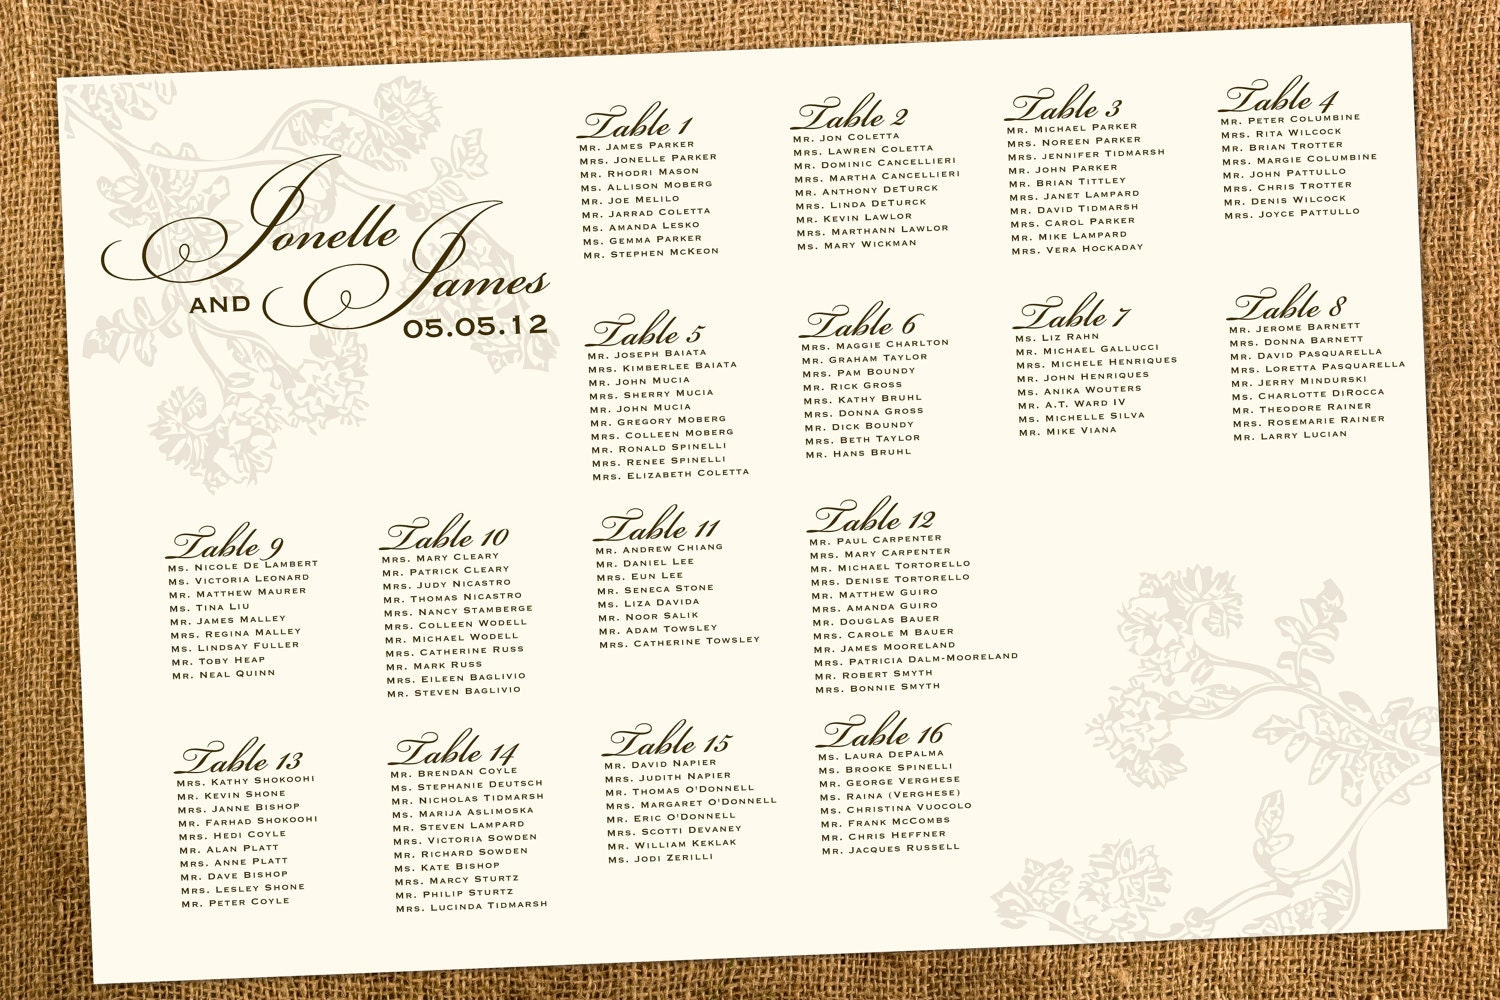 Wedding Seating Chart Images Reverse Search Il Fullxfull Wedding Seating  Chart IPiz6iaRv7Y%7Cas6NS9LFvi*jDg